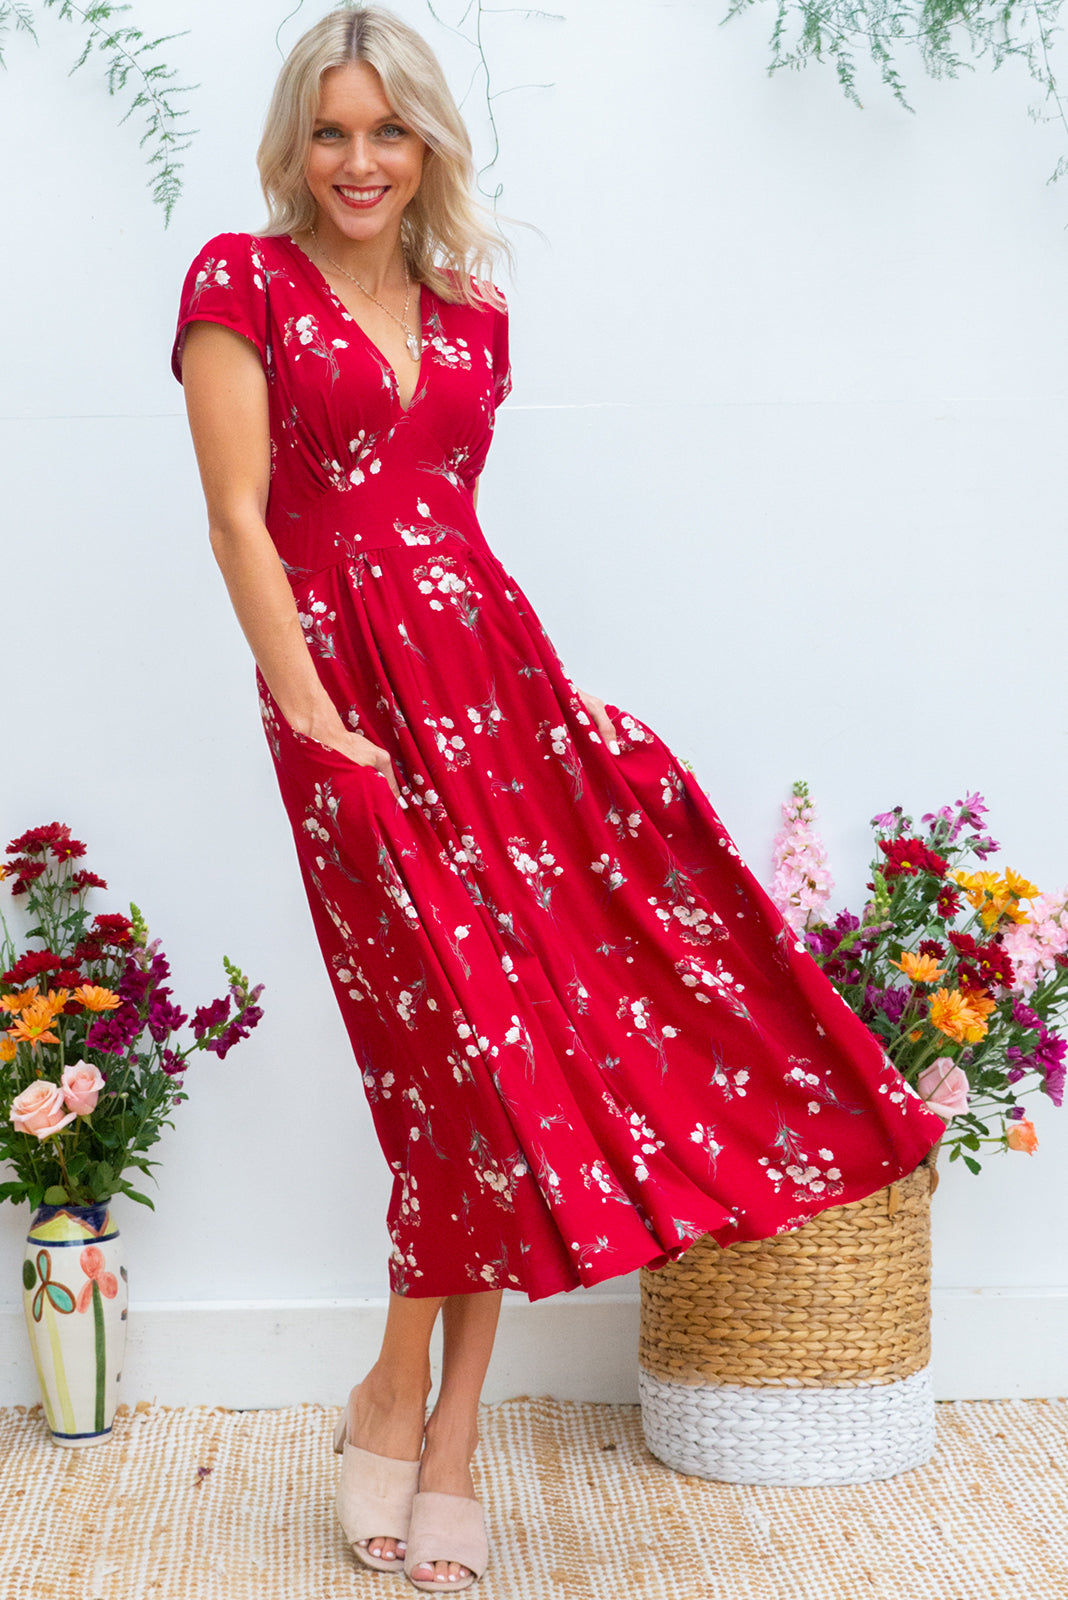 Lizzie red blooms dress retro inspired floral midi length in a dark bright deep red based delicate floral print on woven 100% rayon